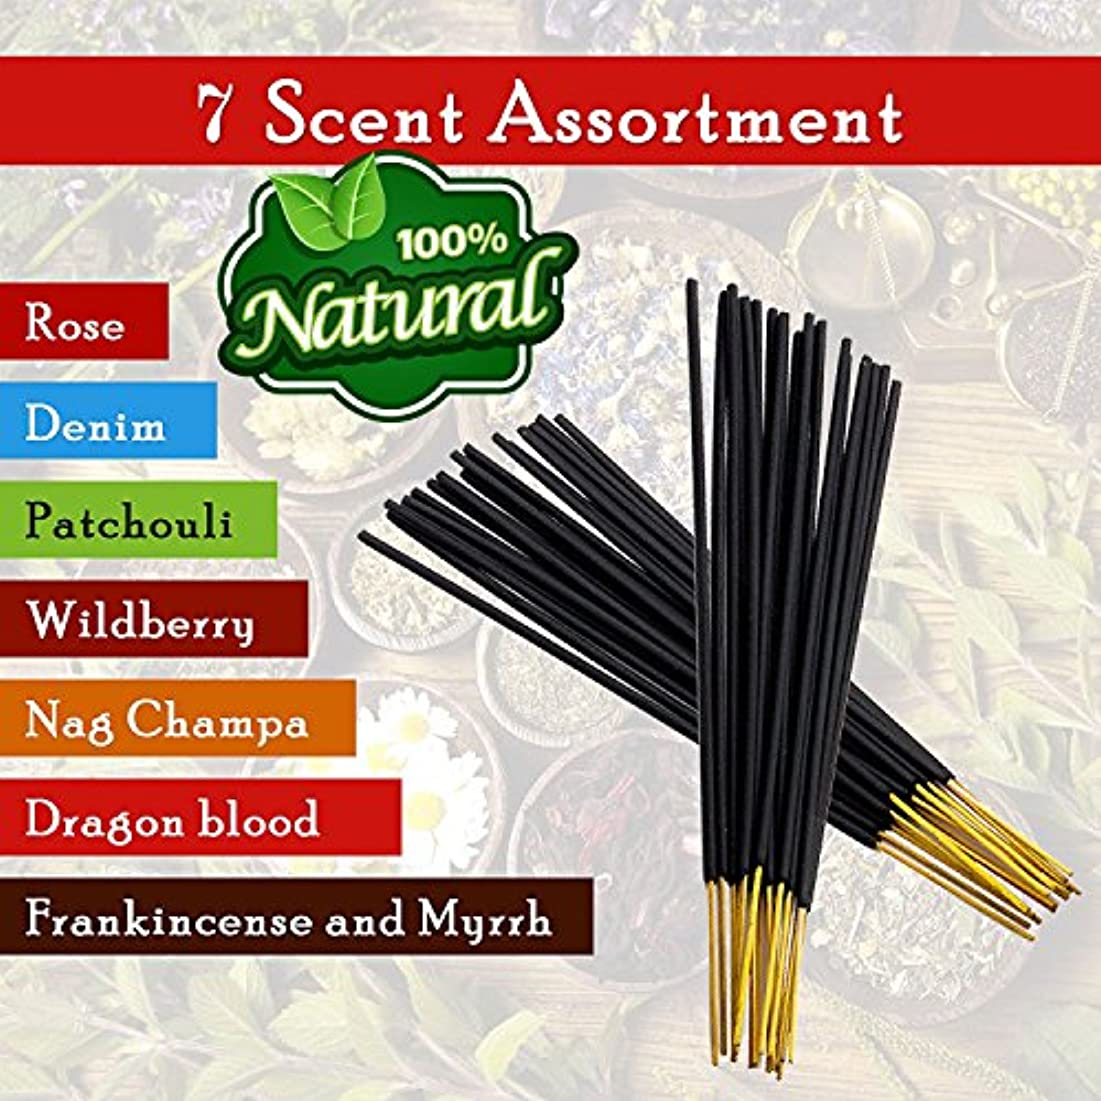 嬉しいです取り戻す誇りに思う7-assorted-scents-Frankincense-and-Myrrh-Patchouli-Denim-Rose Dragon-blood-Nag-champa-Wildberry 100%-Natural-Incense-Sticks...